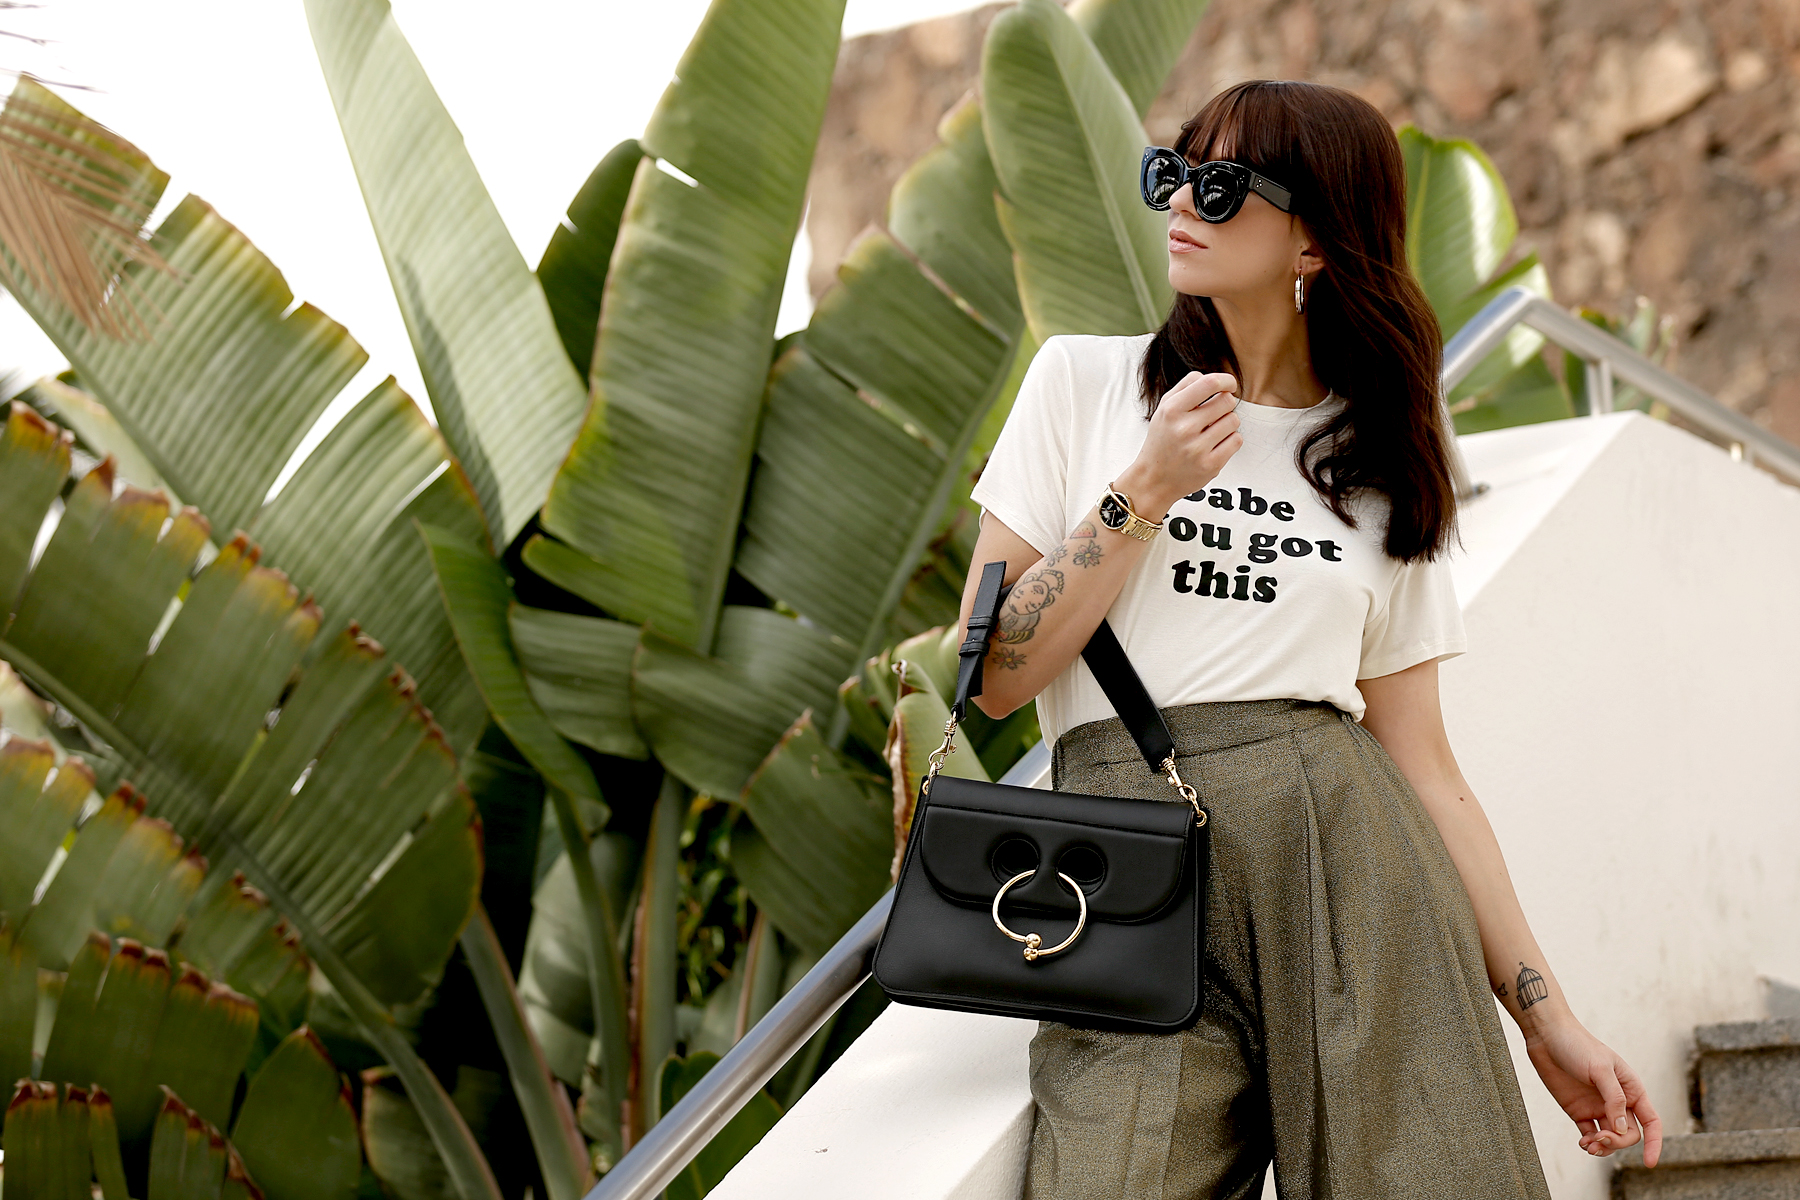 You Got This – Trendwatch Statement Shirts